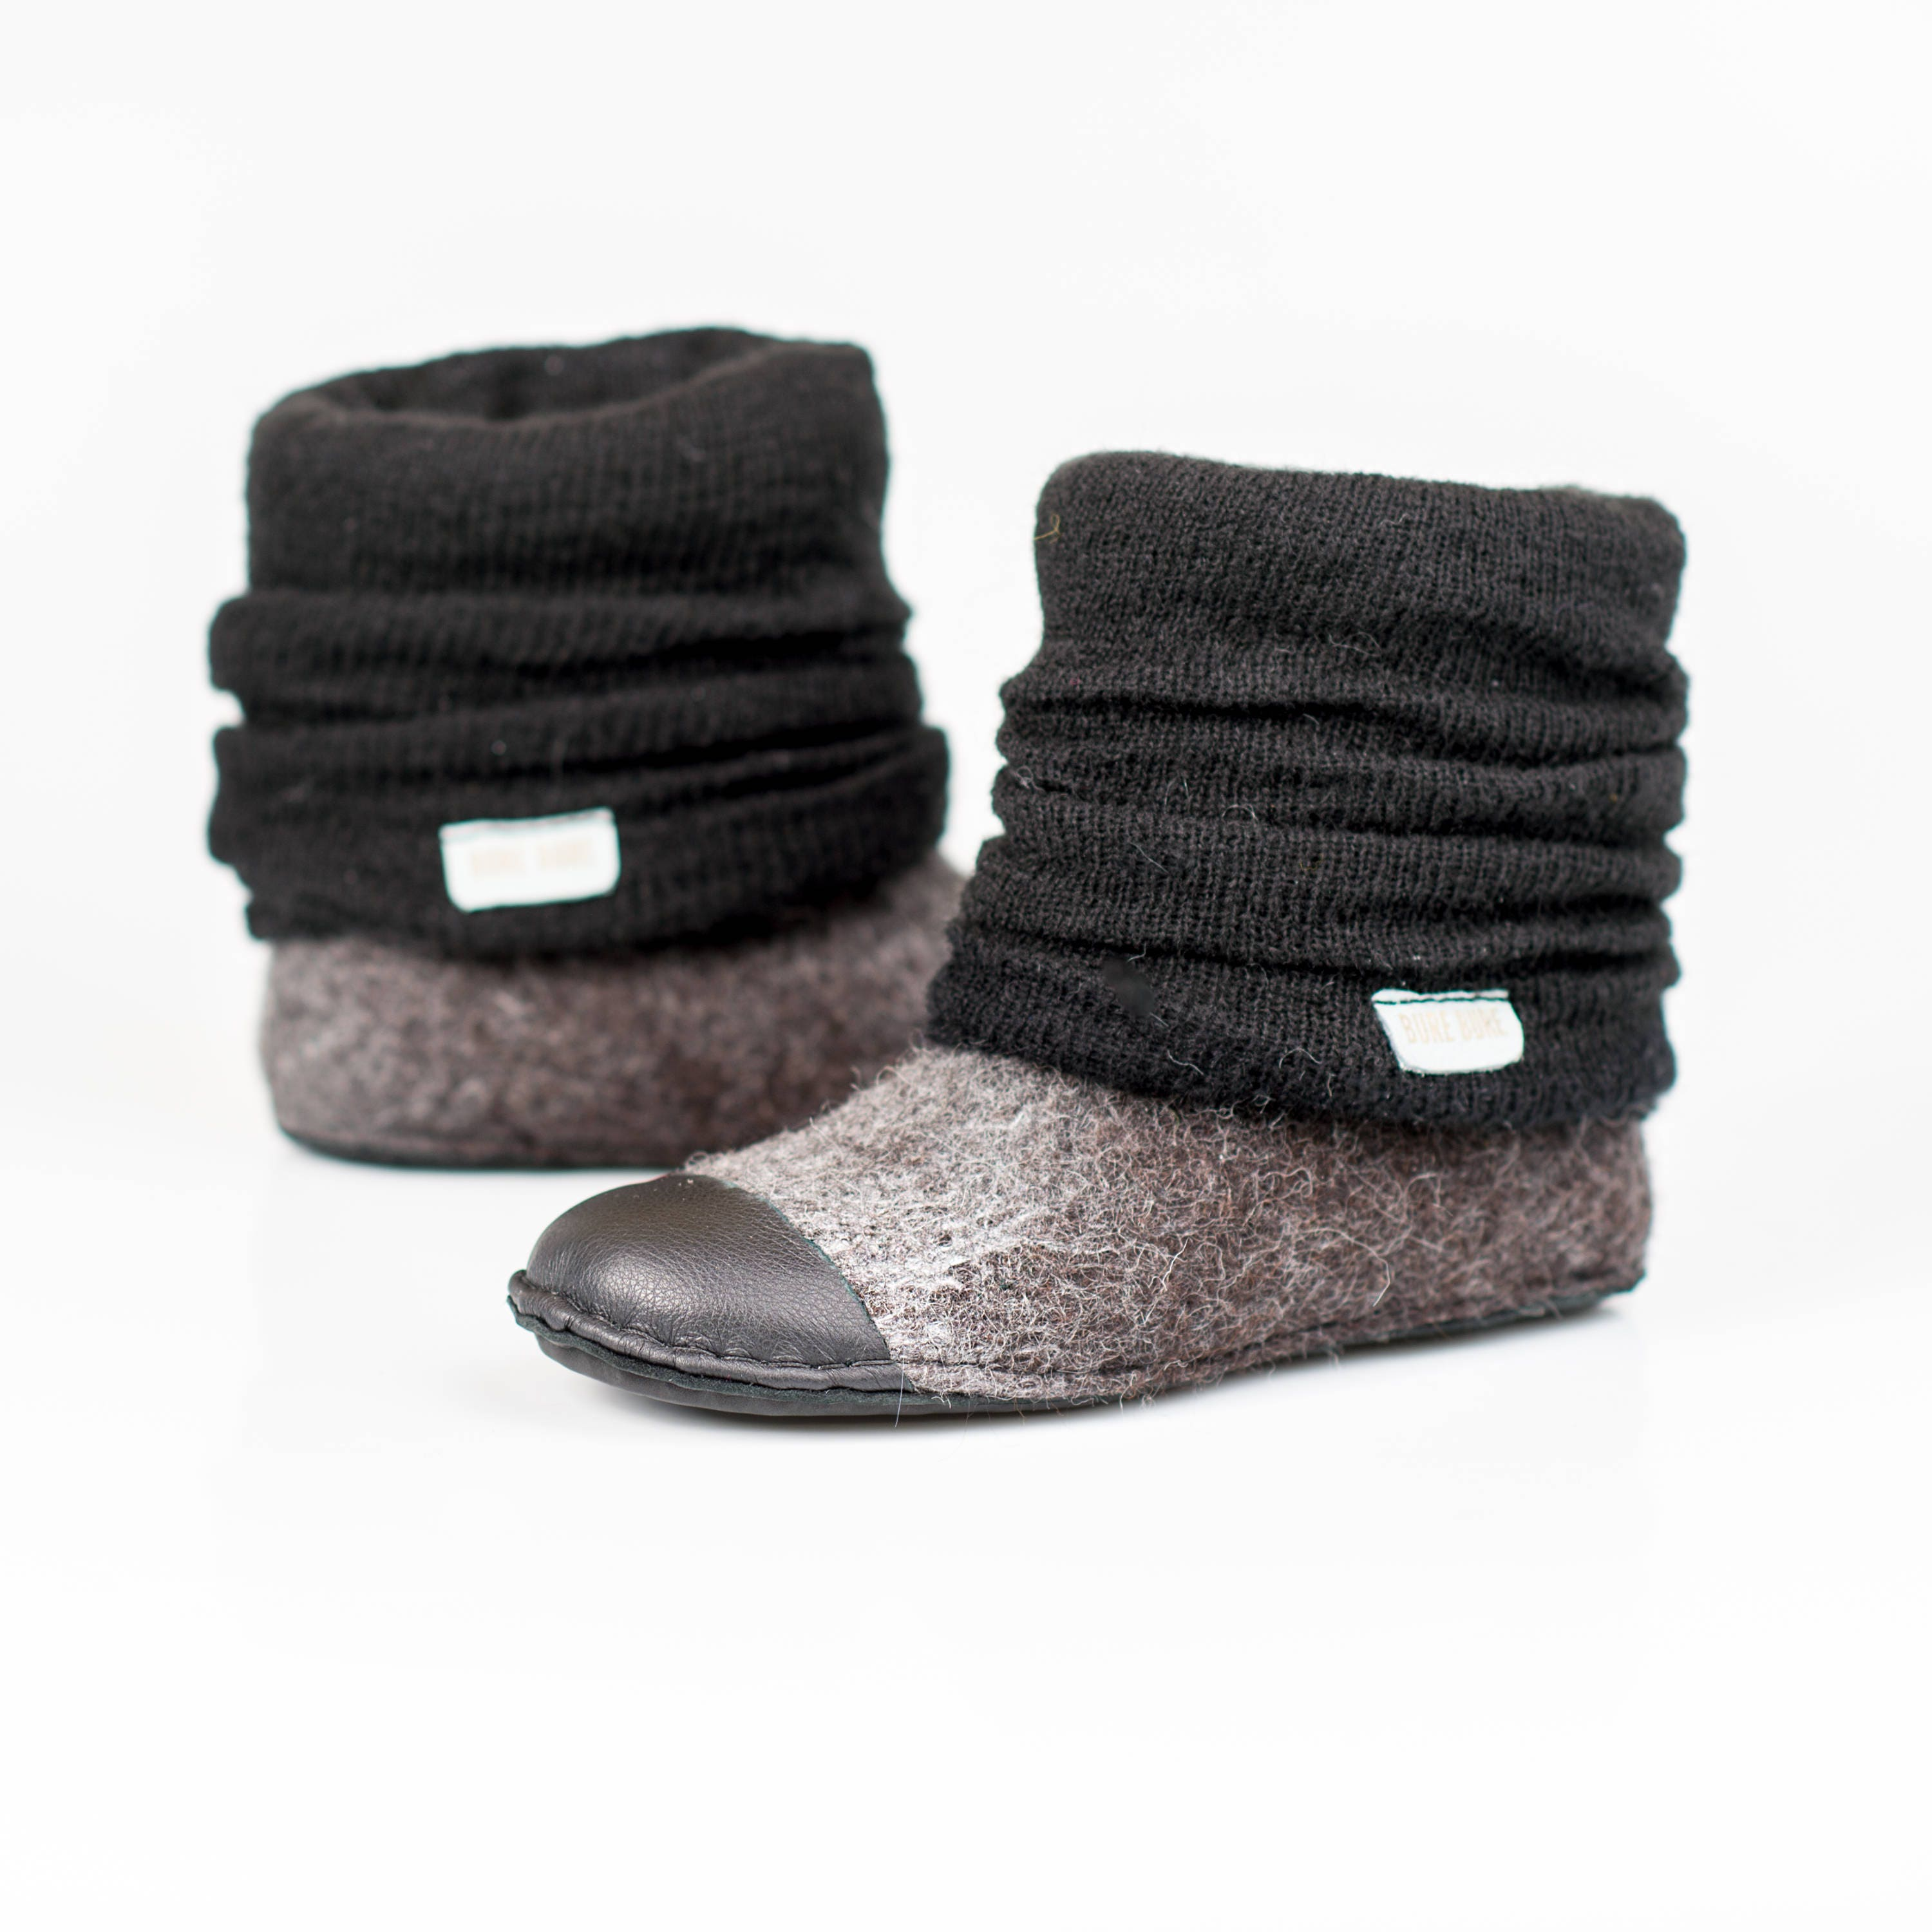 608e6640ff5c7 READY TO SHIP womens size 7 Dark Grey Black wool ankle boots with ...